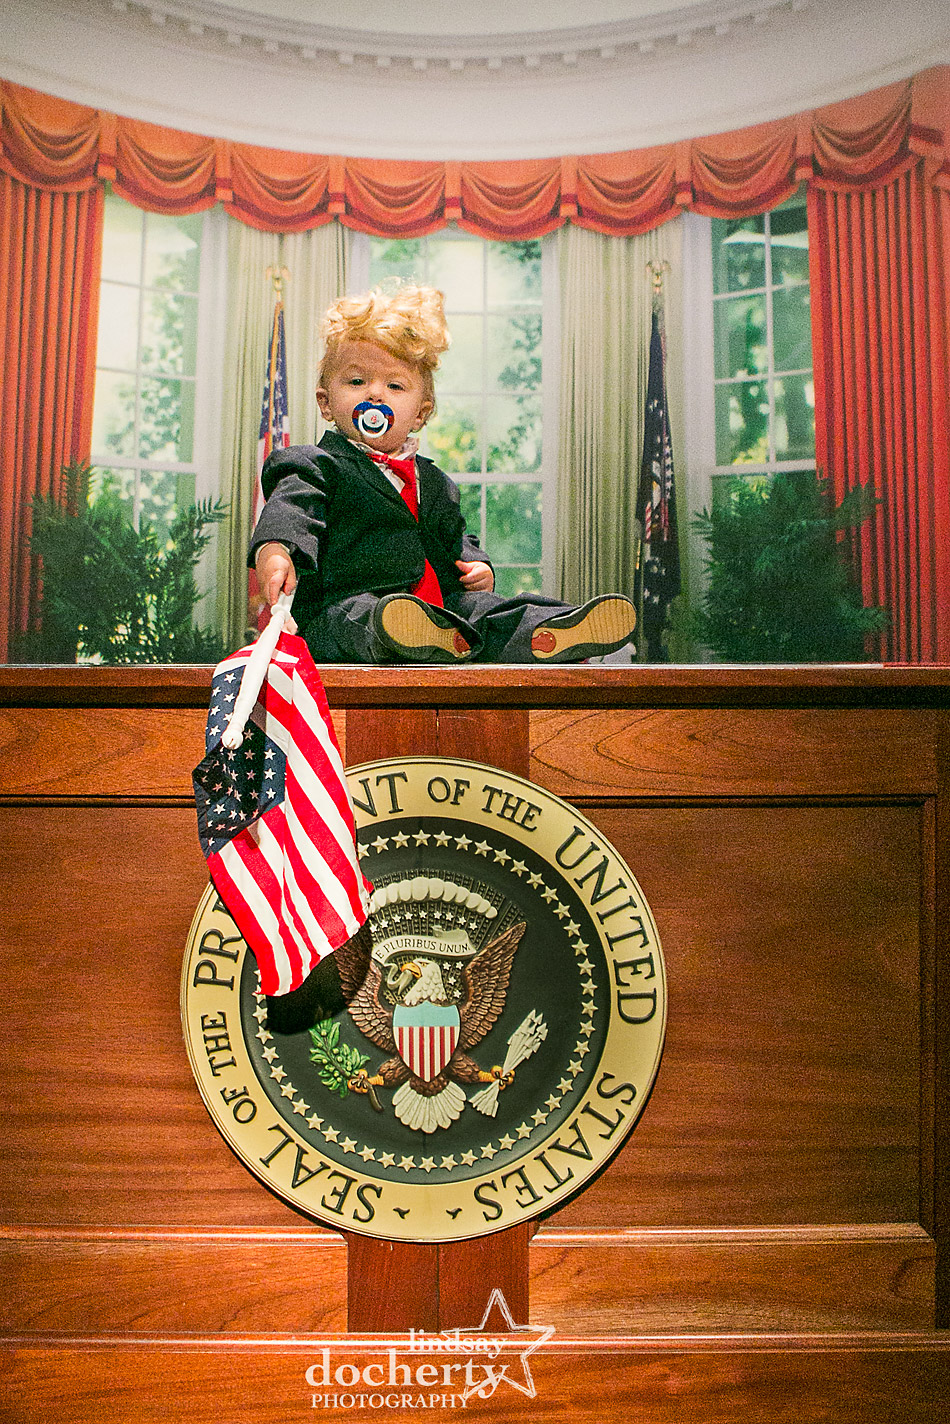 Bably Donald Trump in the Oval Office with flag